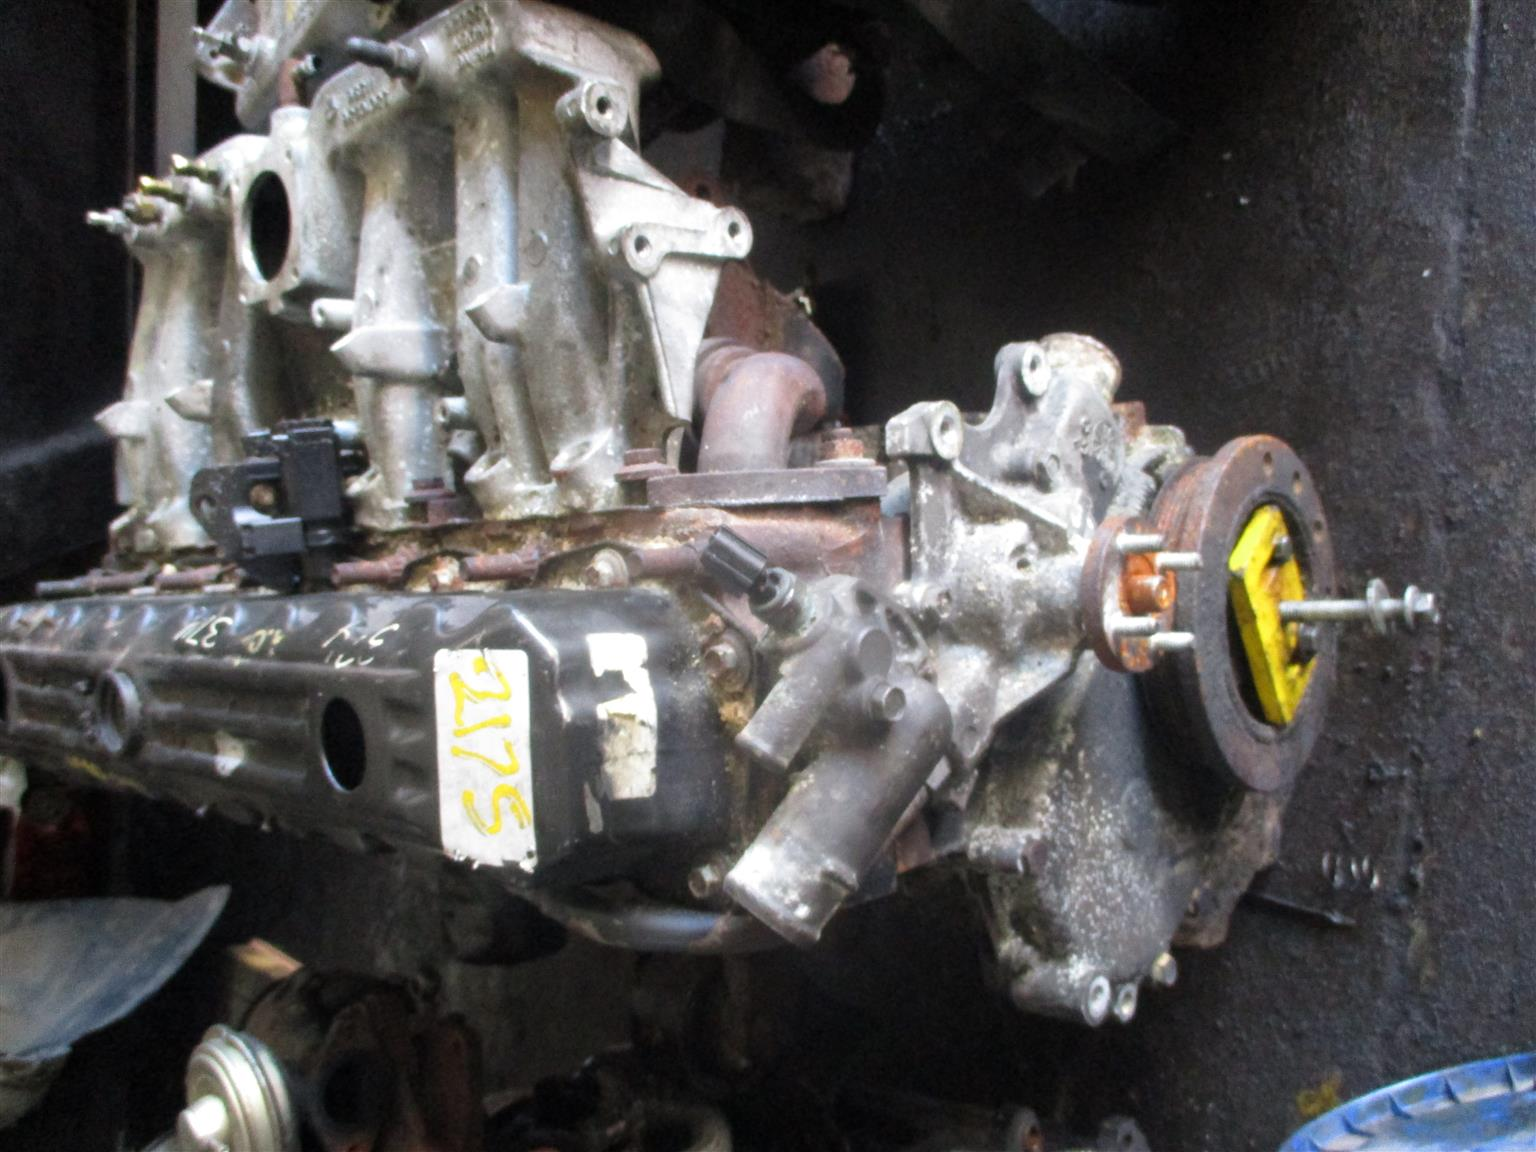 JEEP GRAND CHEROKEE WJ 4 0 USED REPLACEMENT ENGINES- USA